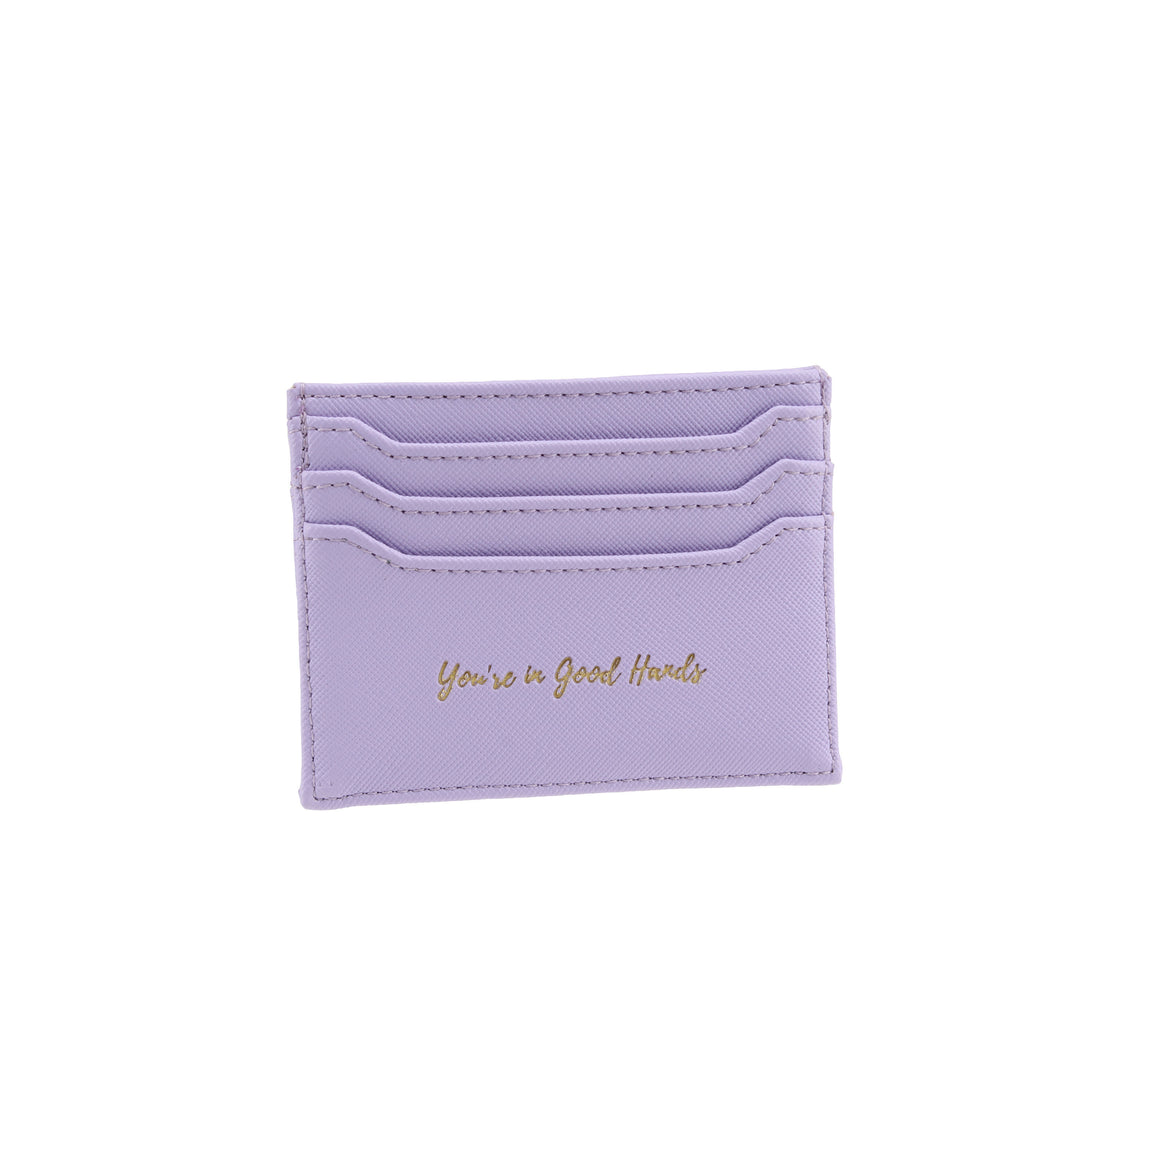 Willow & Rose 'You're In Good Hands' Lilac Card Holder - The Love Trees